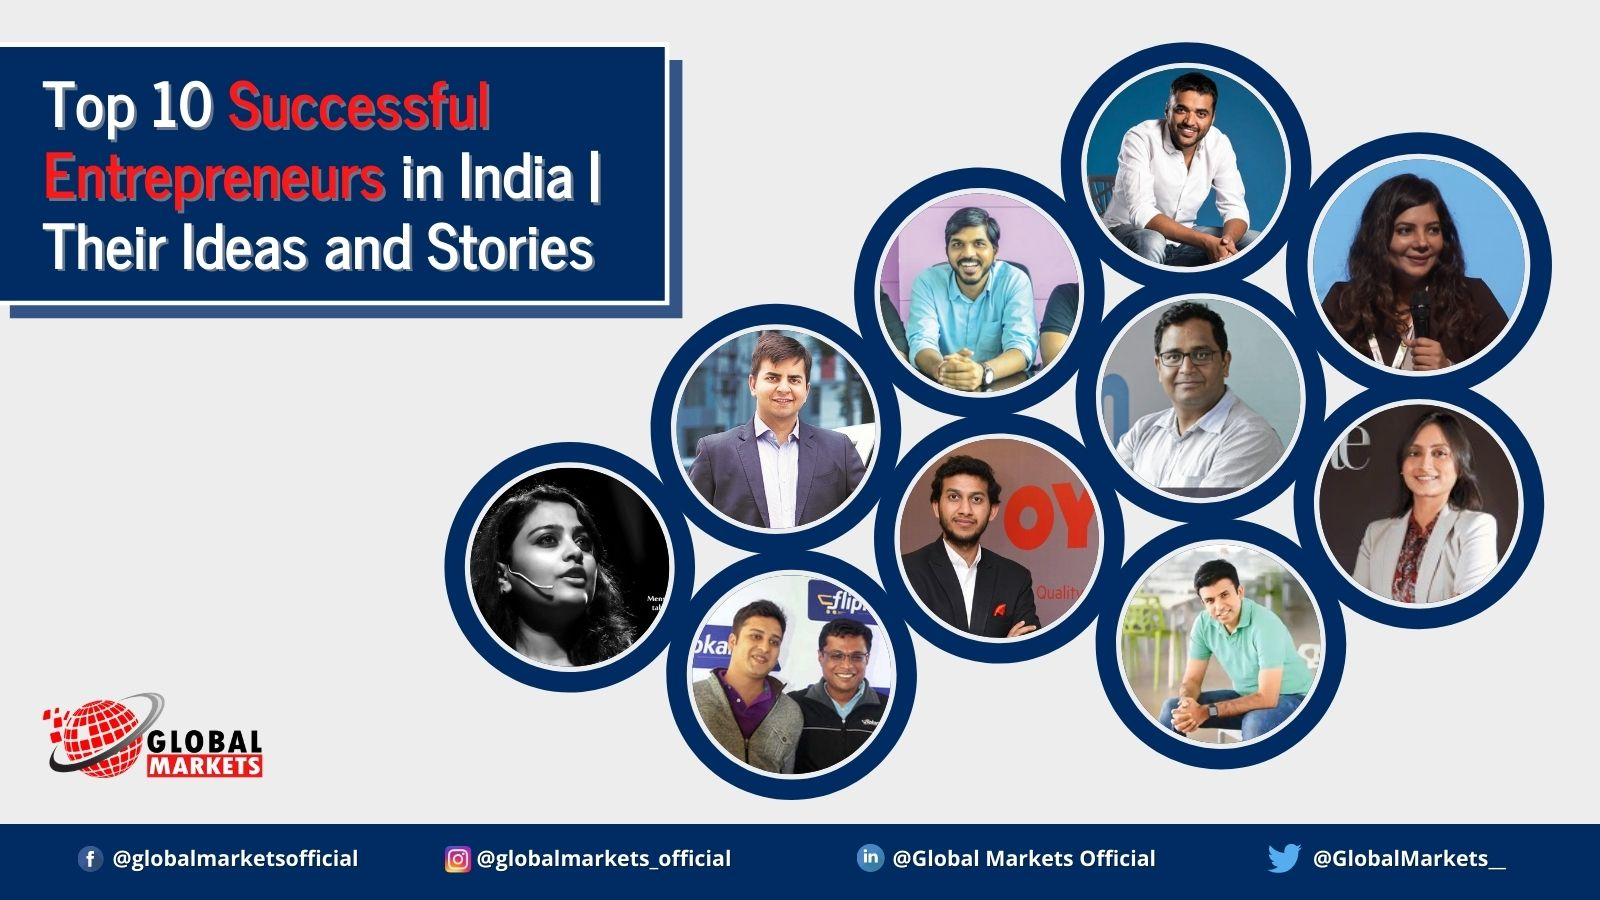 Top 10 Successful Entrepreneurs in India | Their Ideas and Stories